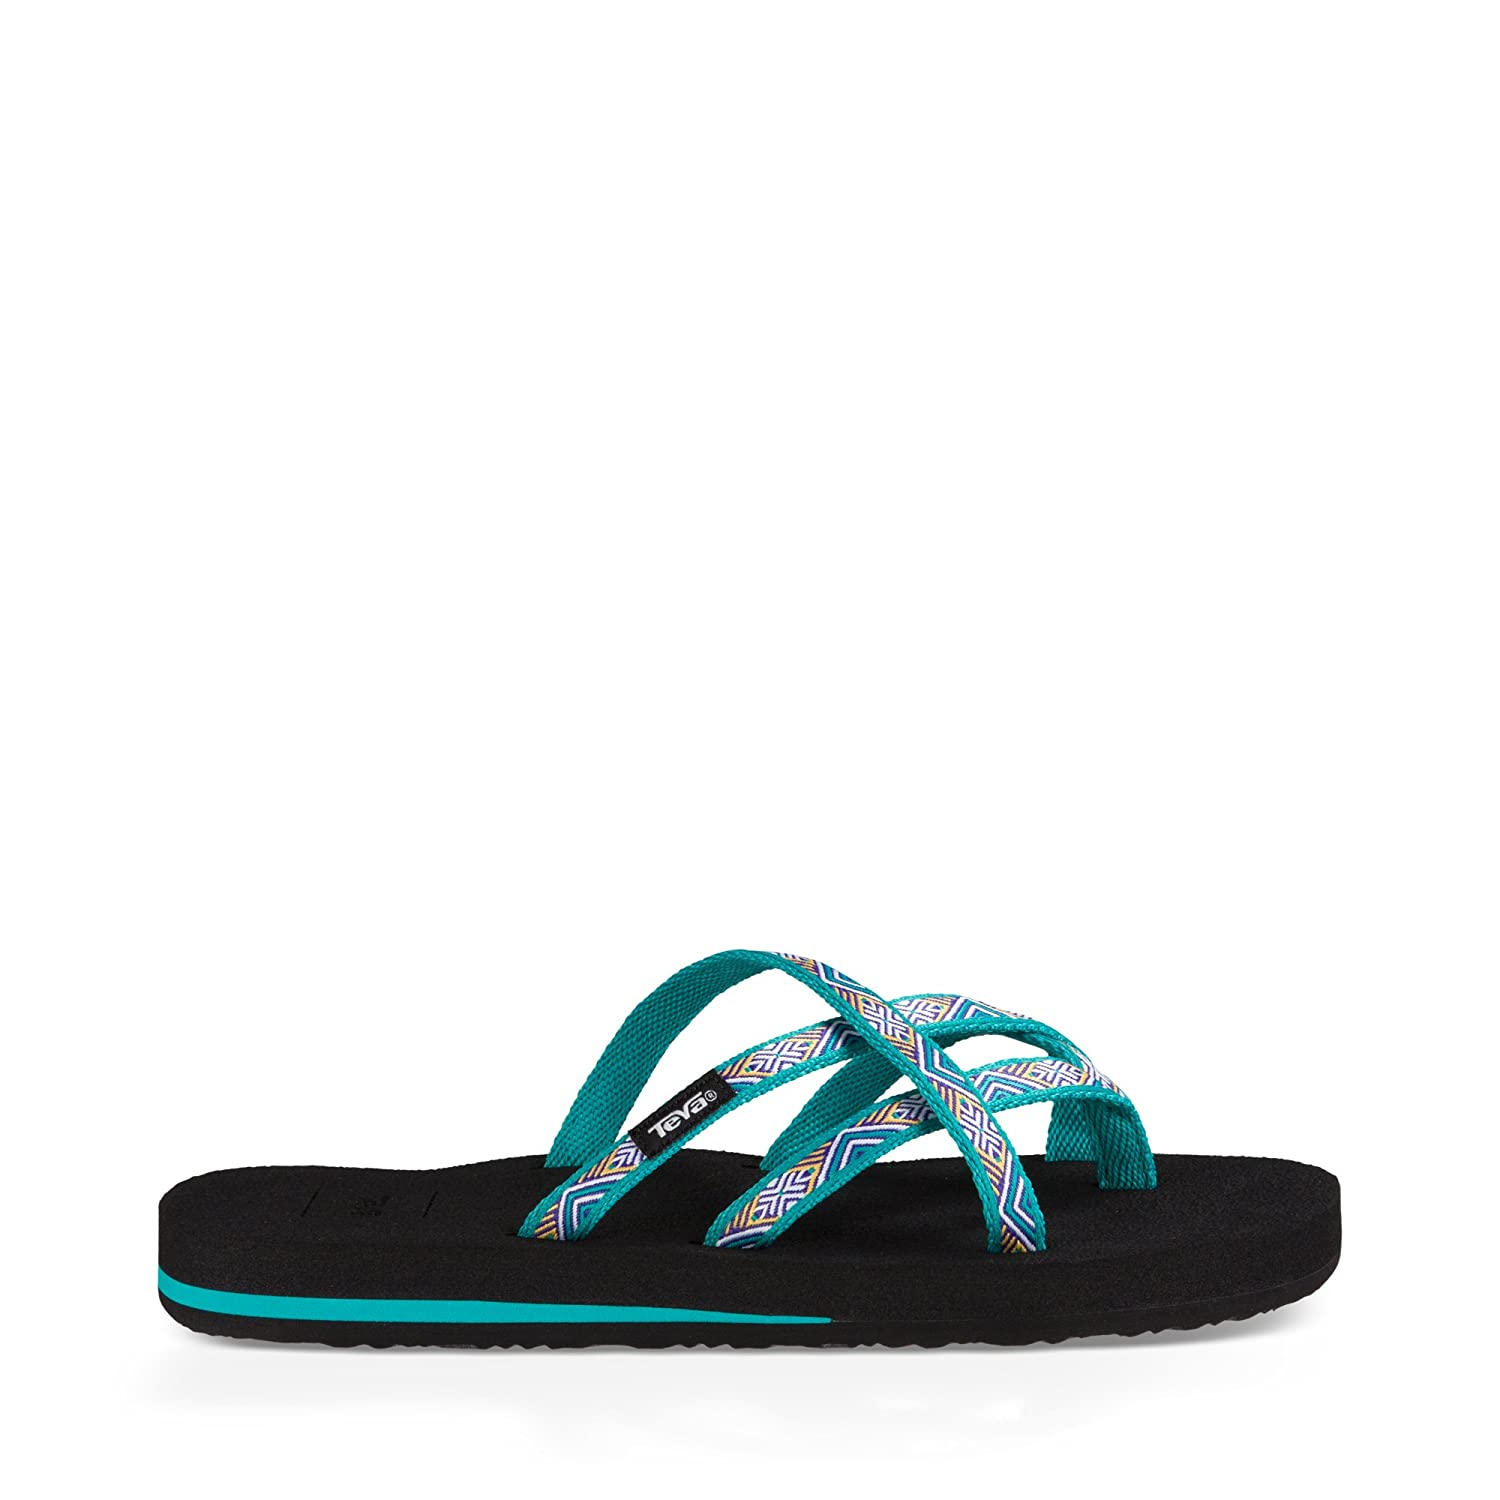 75ca57a1ff0d9 Teva Women s W Olowahu Sandal  Amazon.ca  Shoes   Handbags